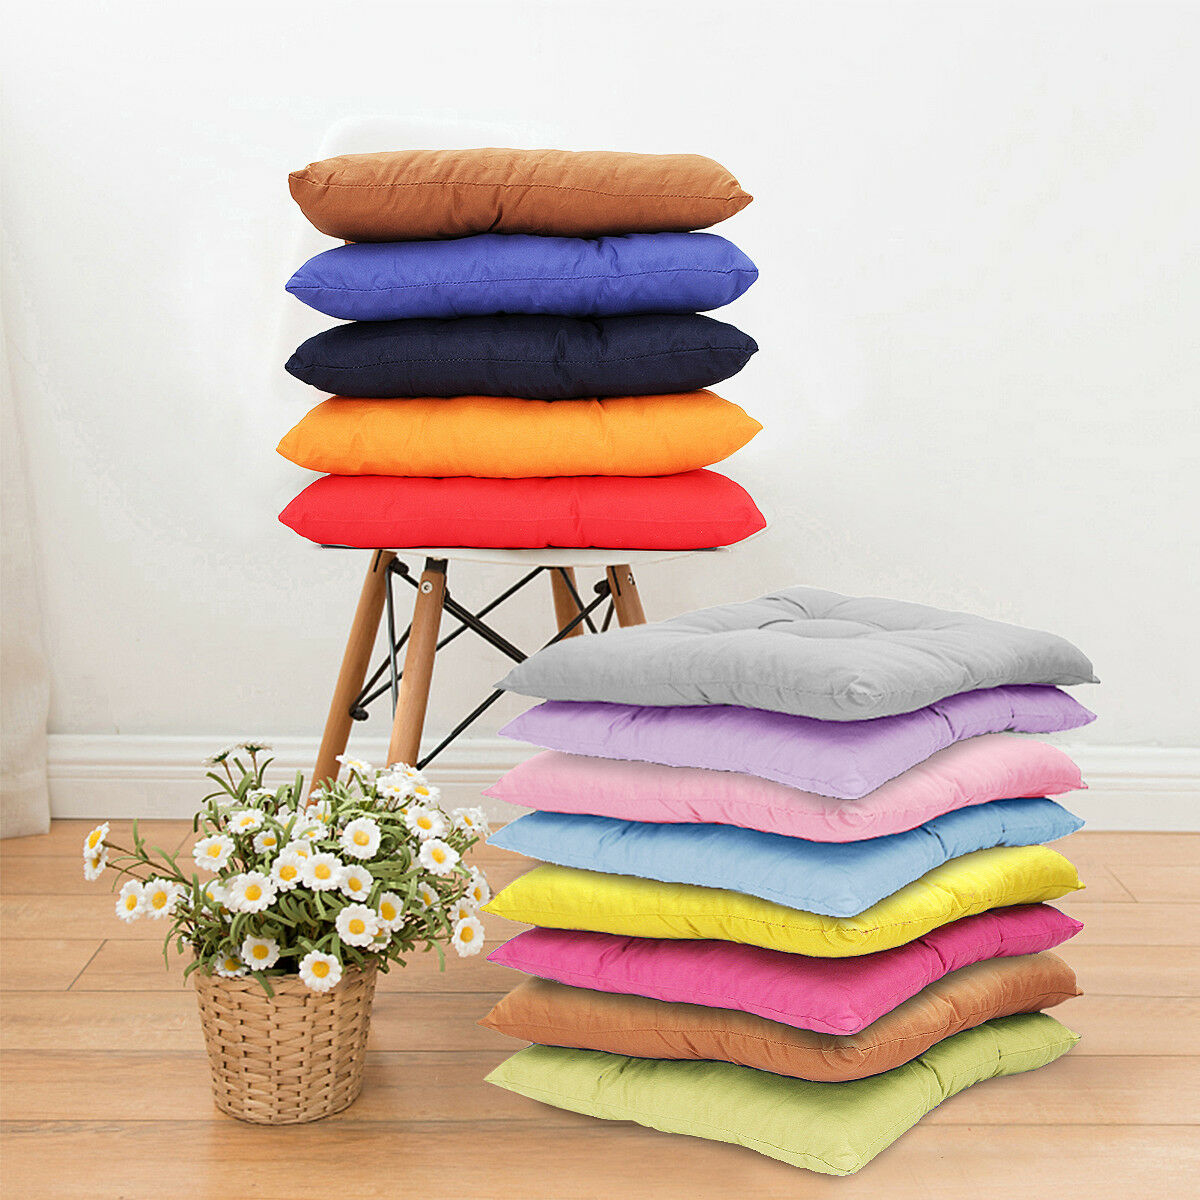 40X40CM COLORFUL SQUARE SOFT THICKEN SEAT PAD CUSHION TIE ON CHAIR HOME DECOR Bo